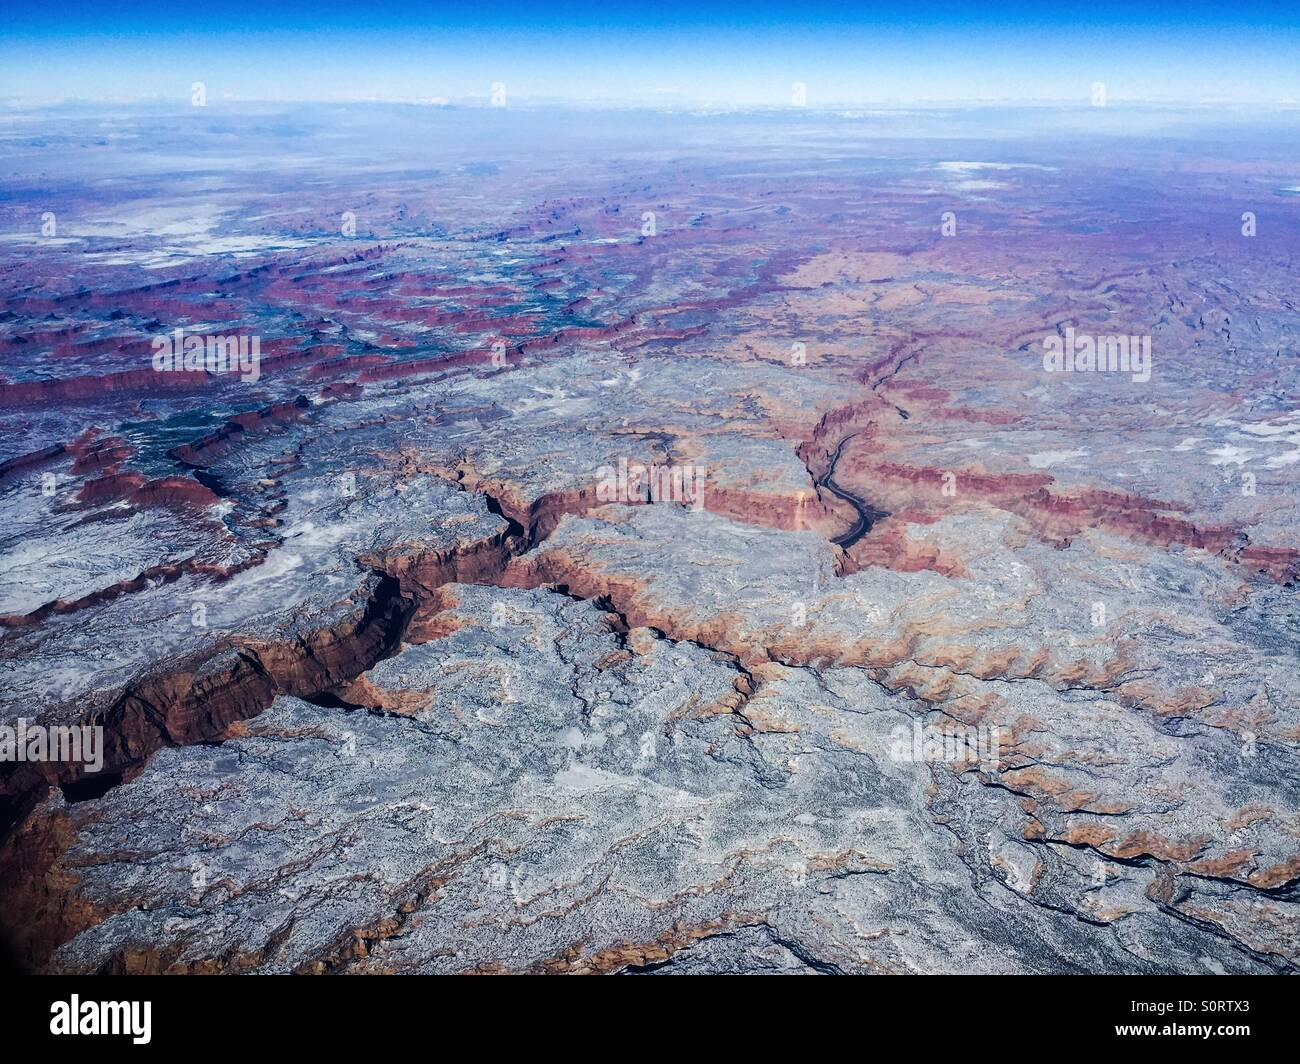 Eastern Colorado Canyons from Above - Stock Image